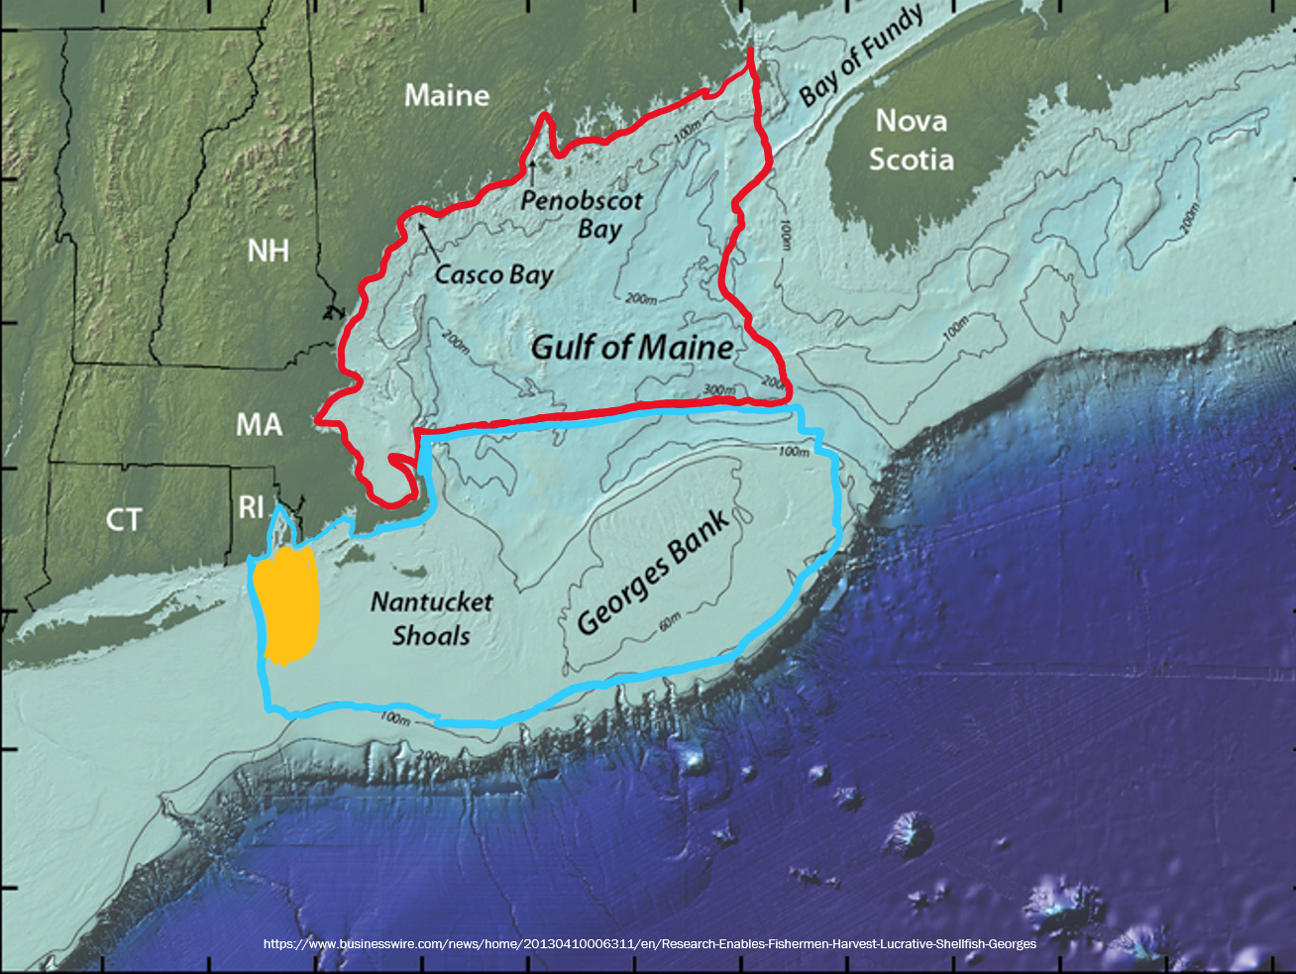 Figure 2: Northwest Atlantic. Gulf of Maine is outlined in red, Georges Bank is outlined in blue.